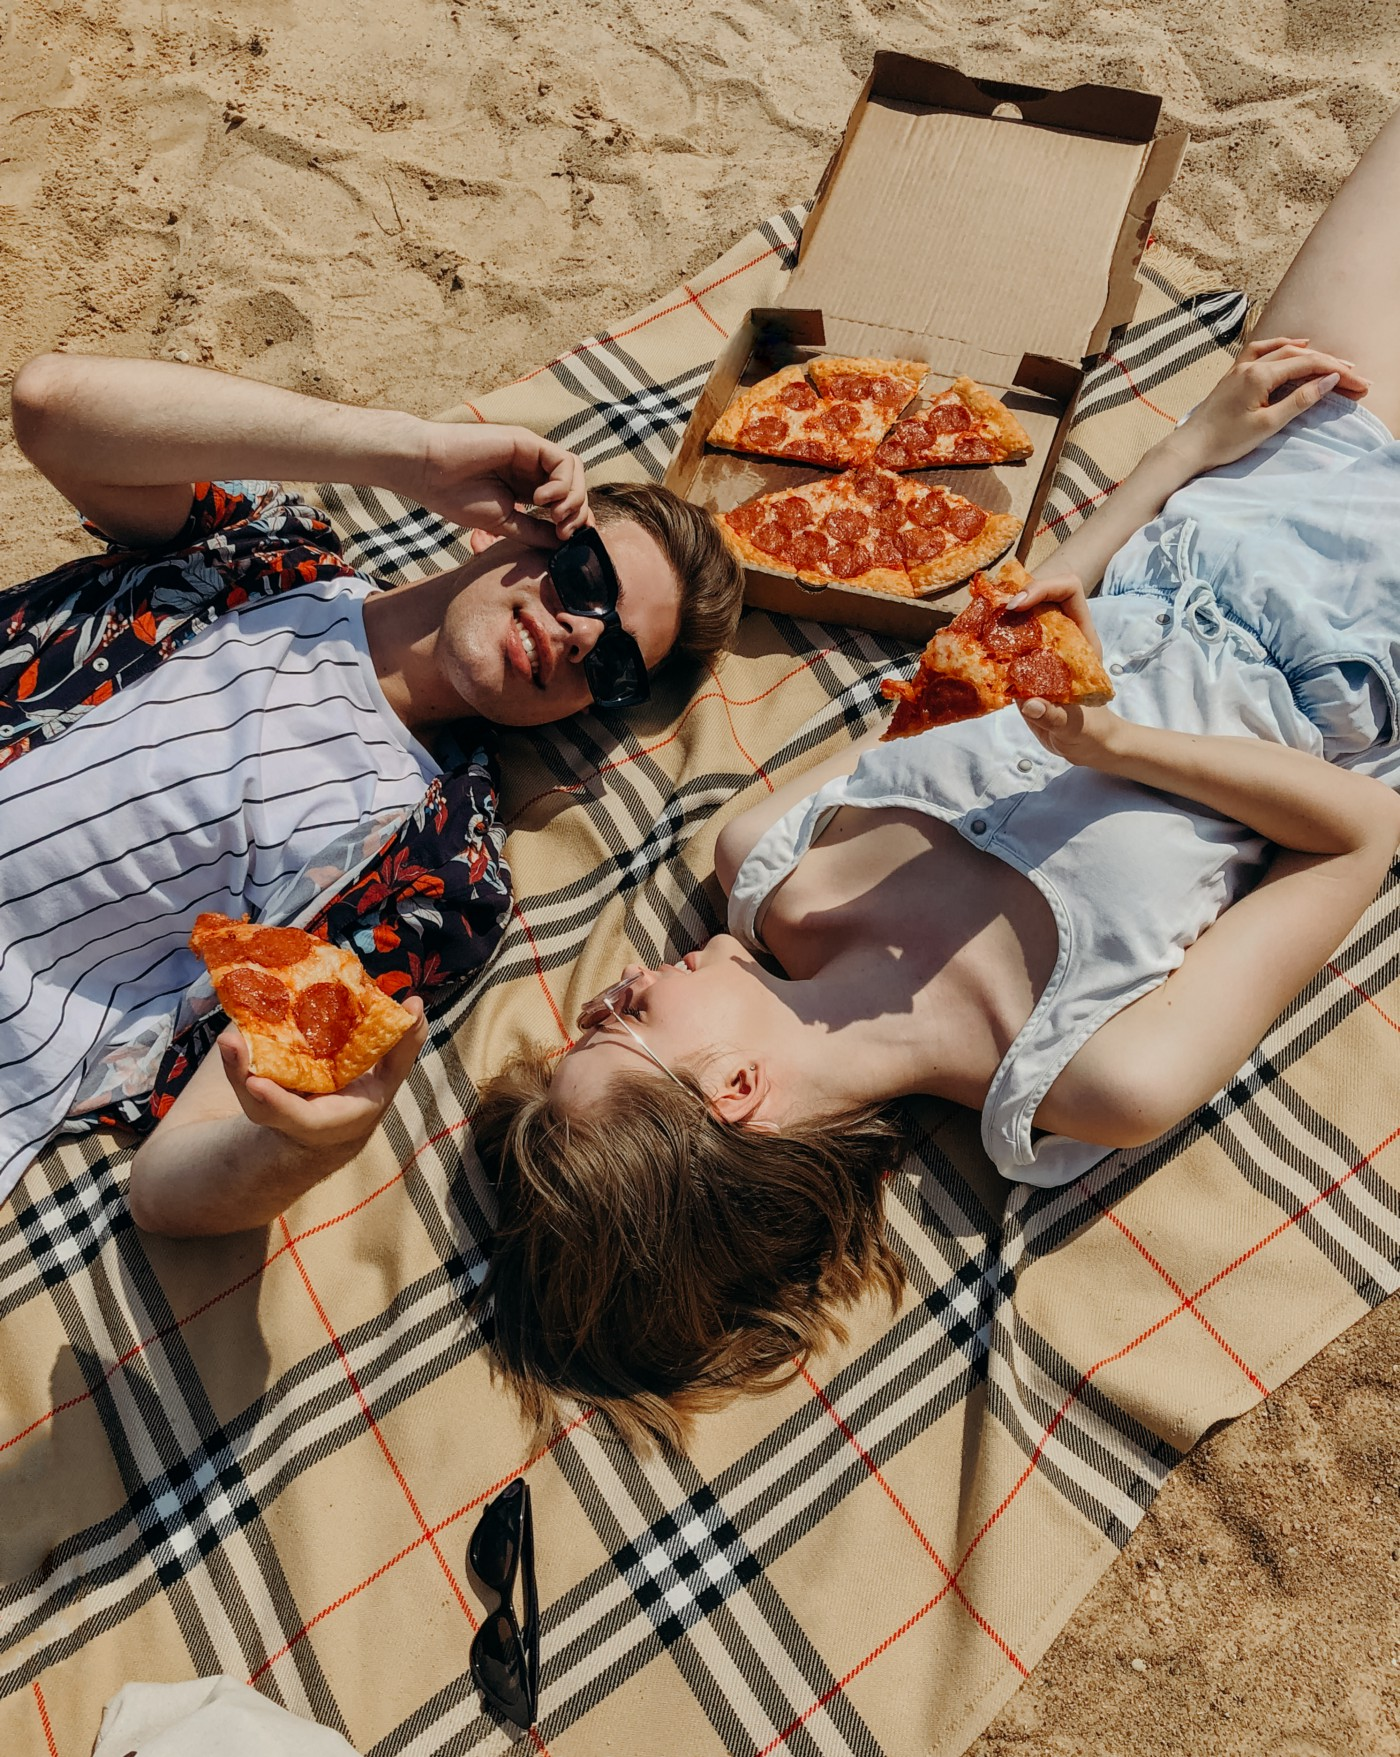 Picture of 2 people having pizza in the sun.